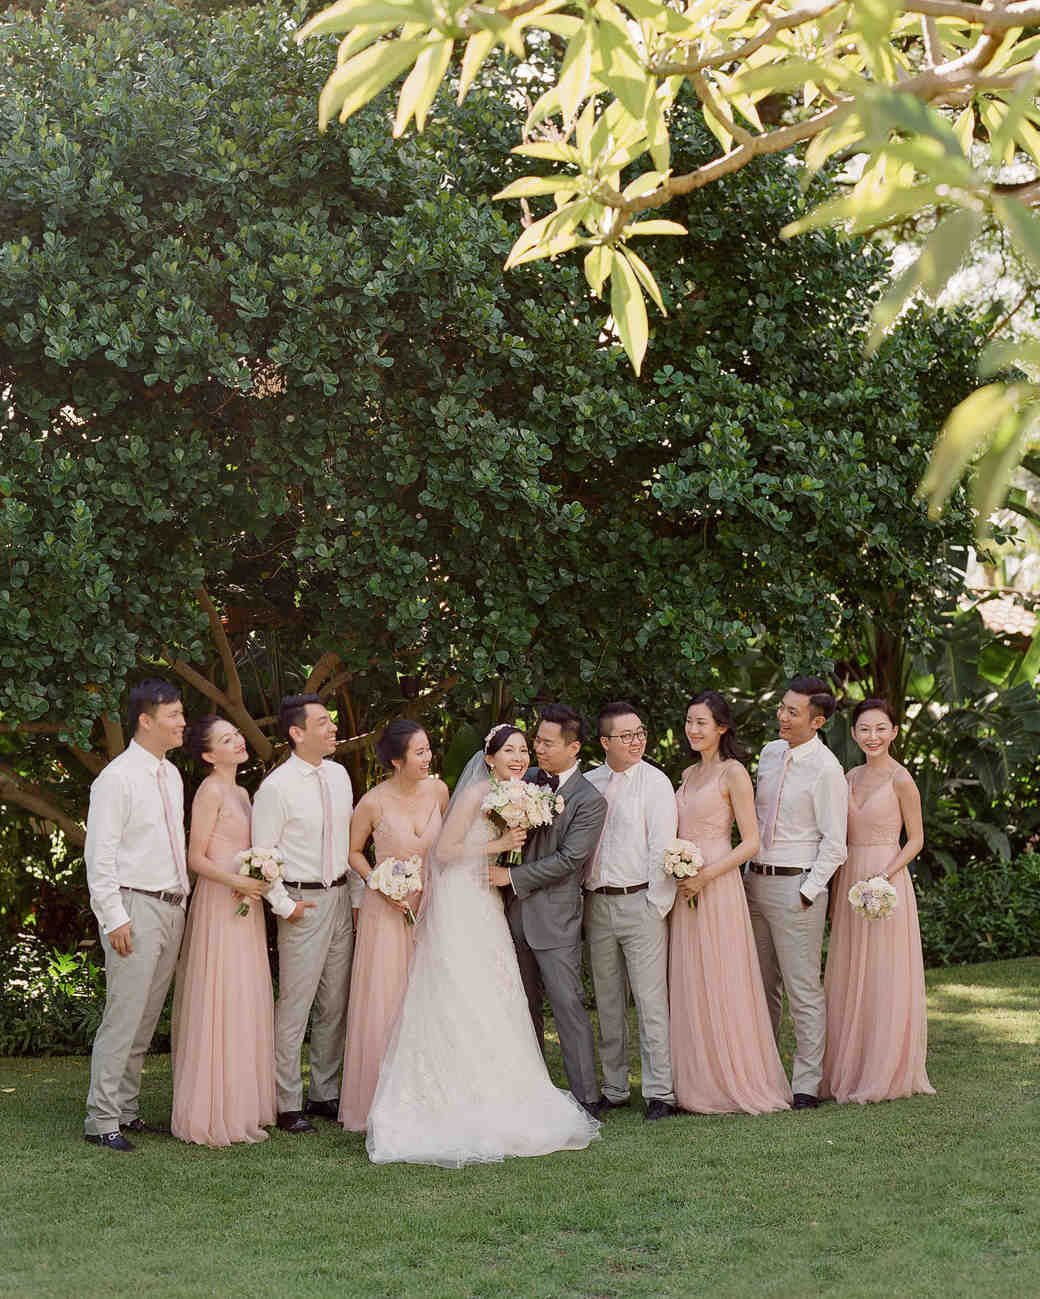 hawaiian wedding party pose in front of tree line